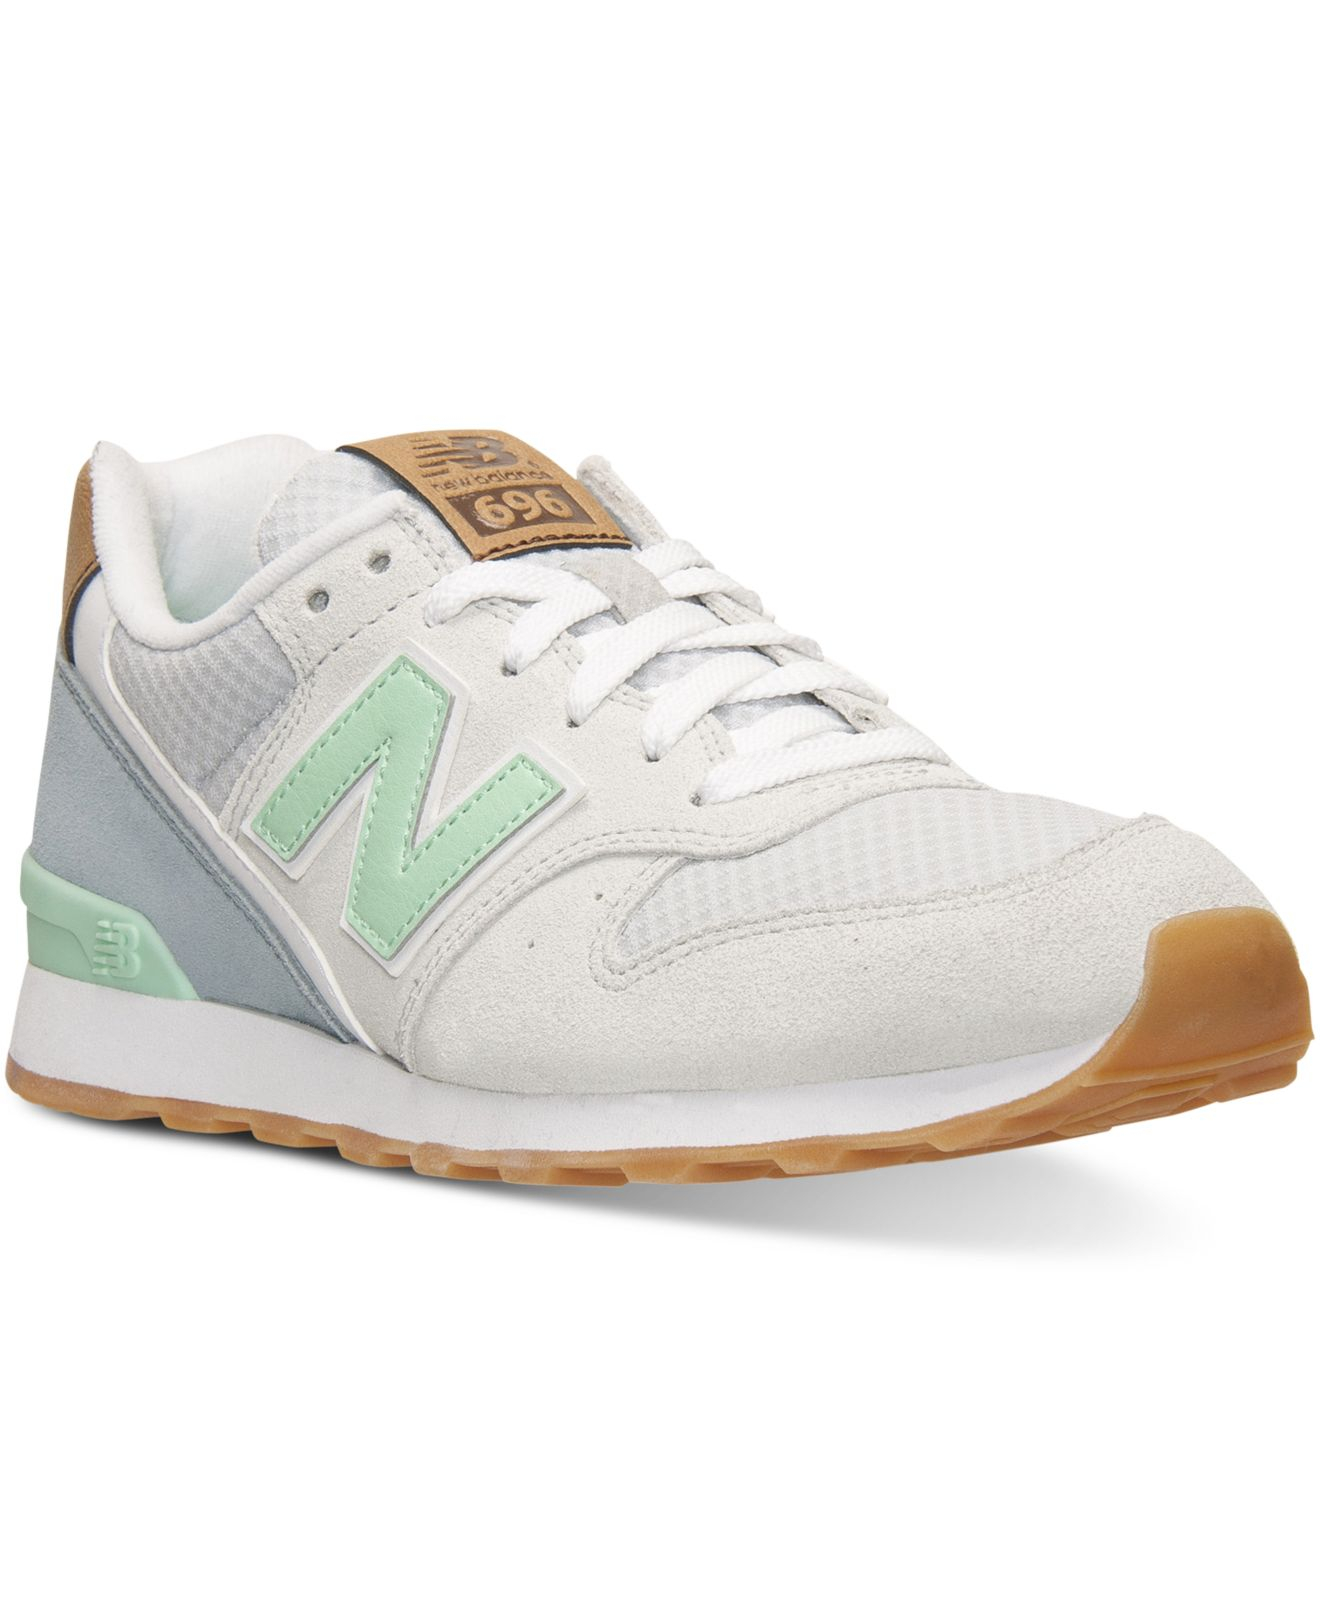 499bd35bf7f Lyst - New Balance Women s 696 Casual Sneakers From Finish Line in Green